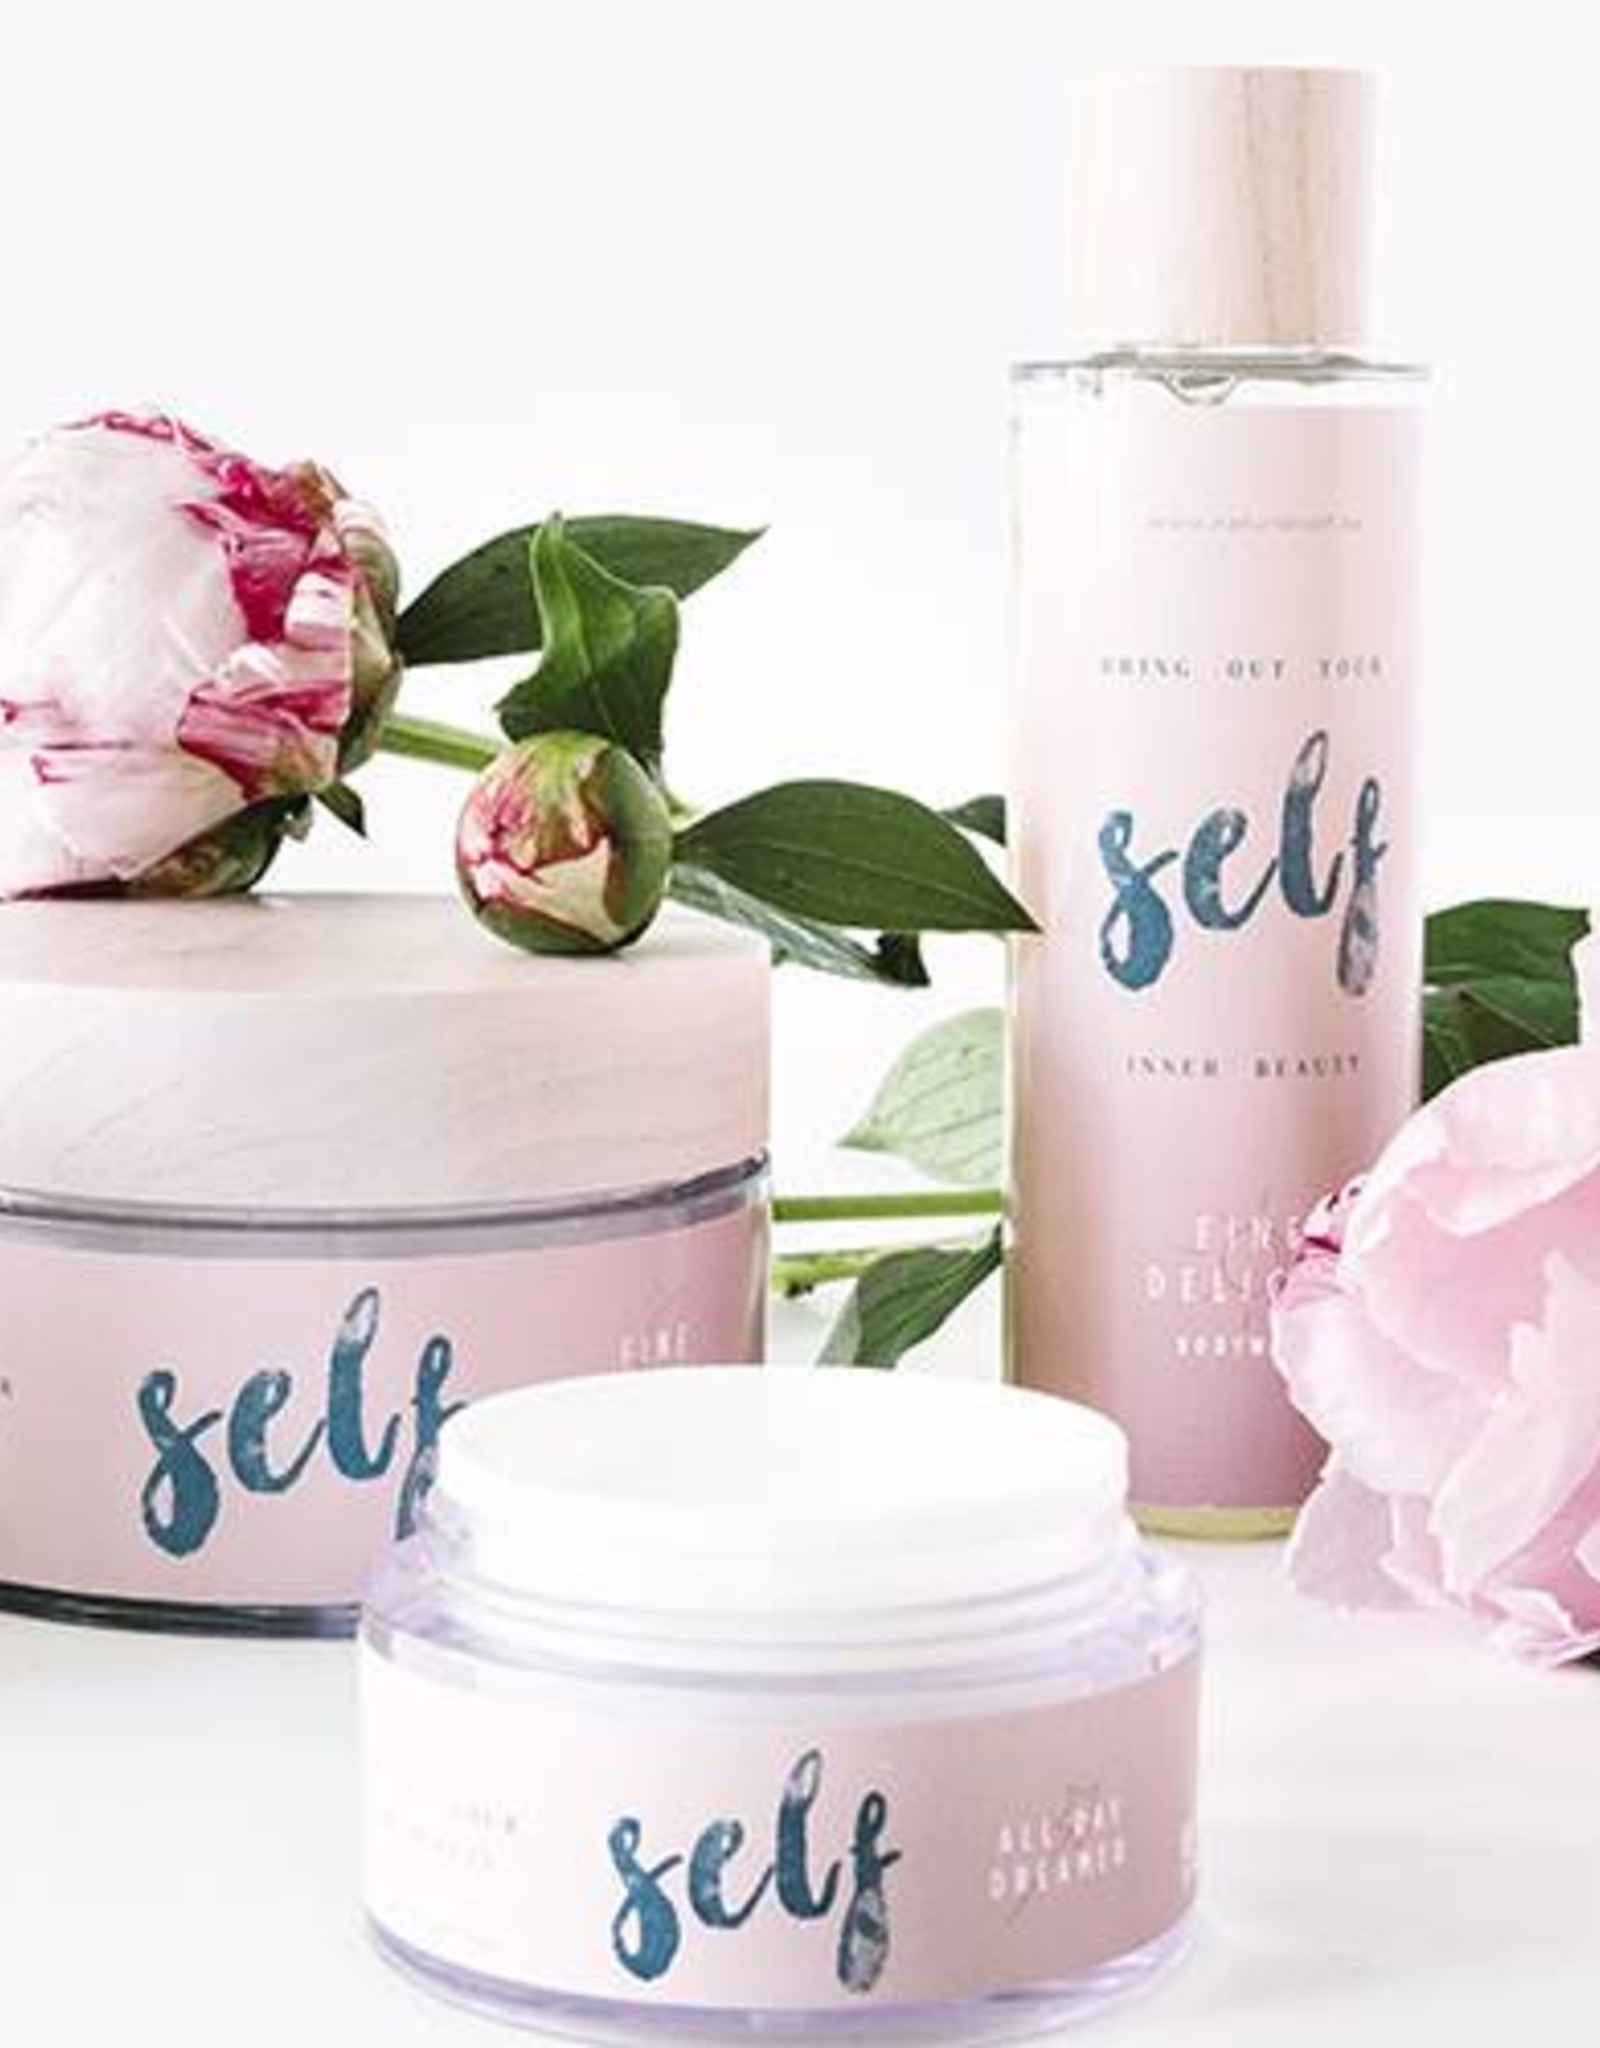 Self Self - Body Butter